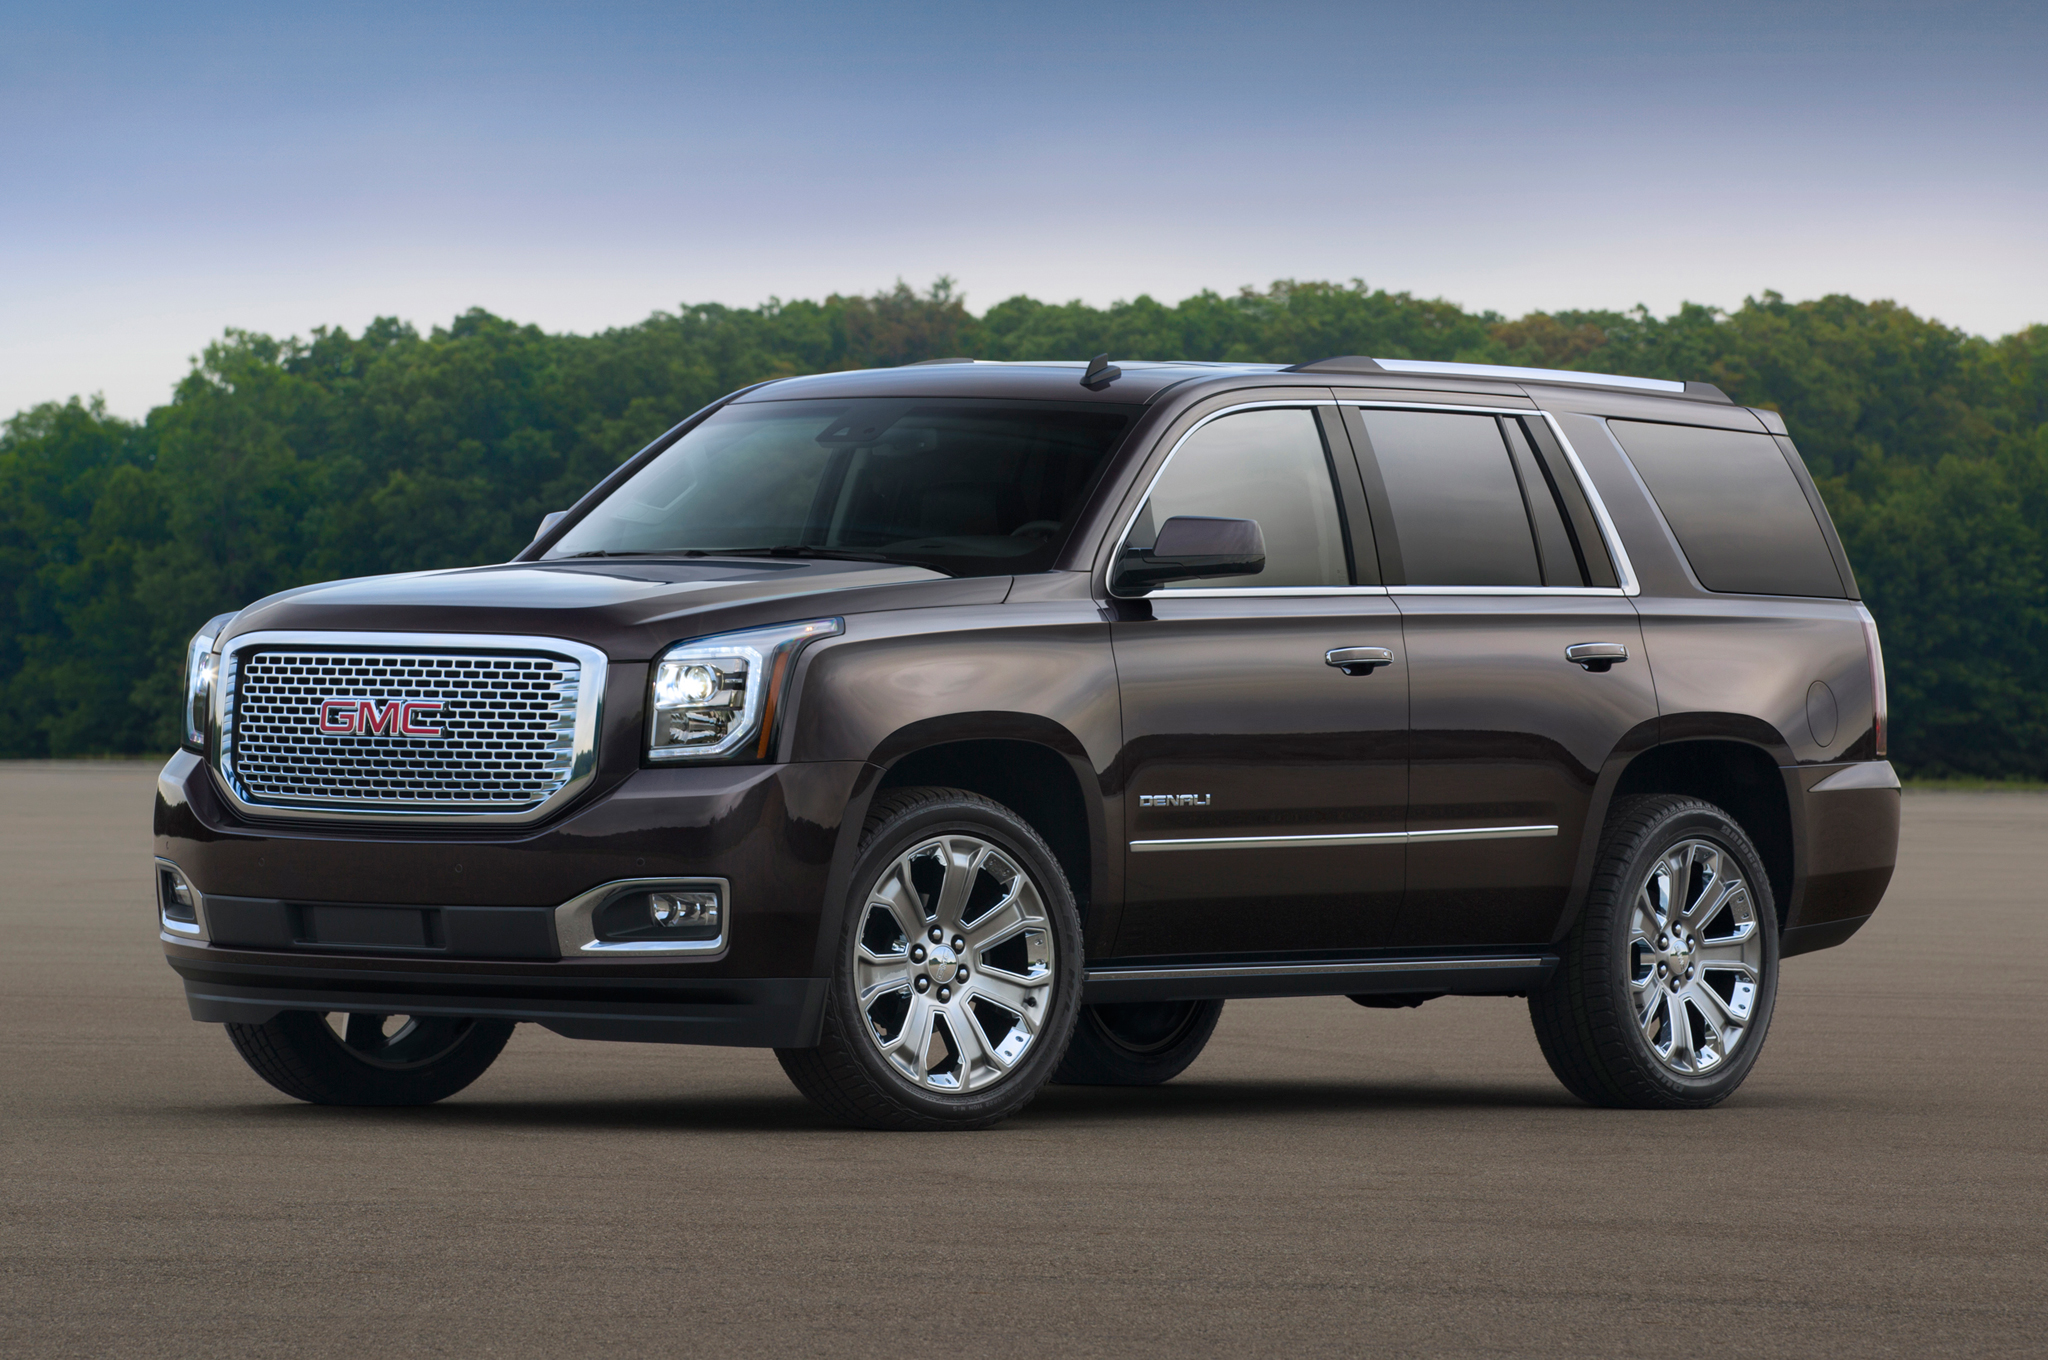 2015 GMC Yukon XL photo - 1